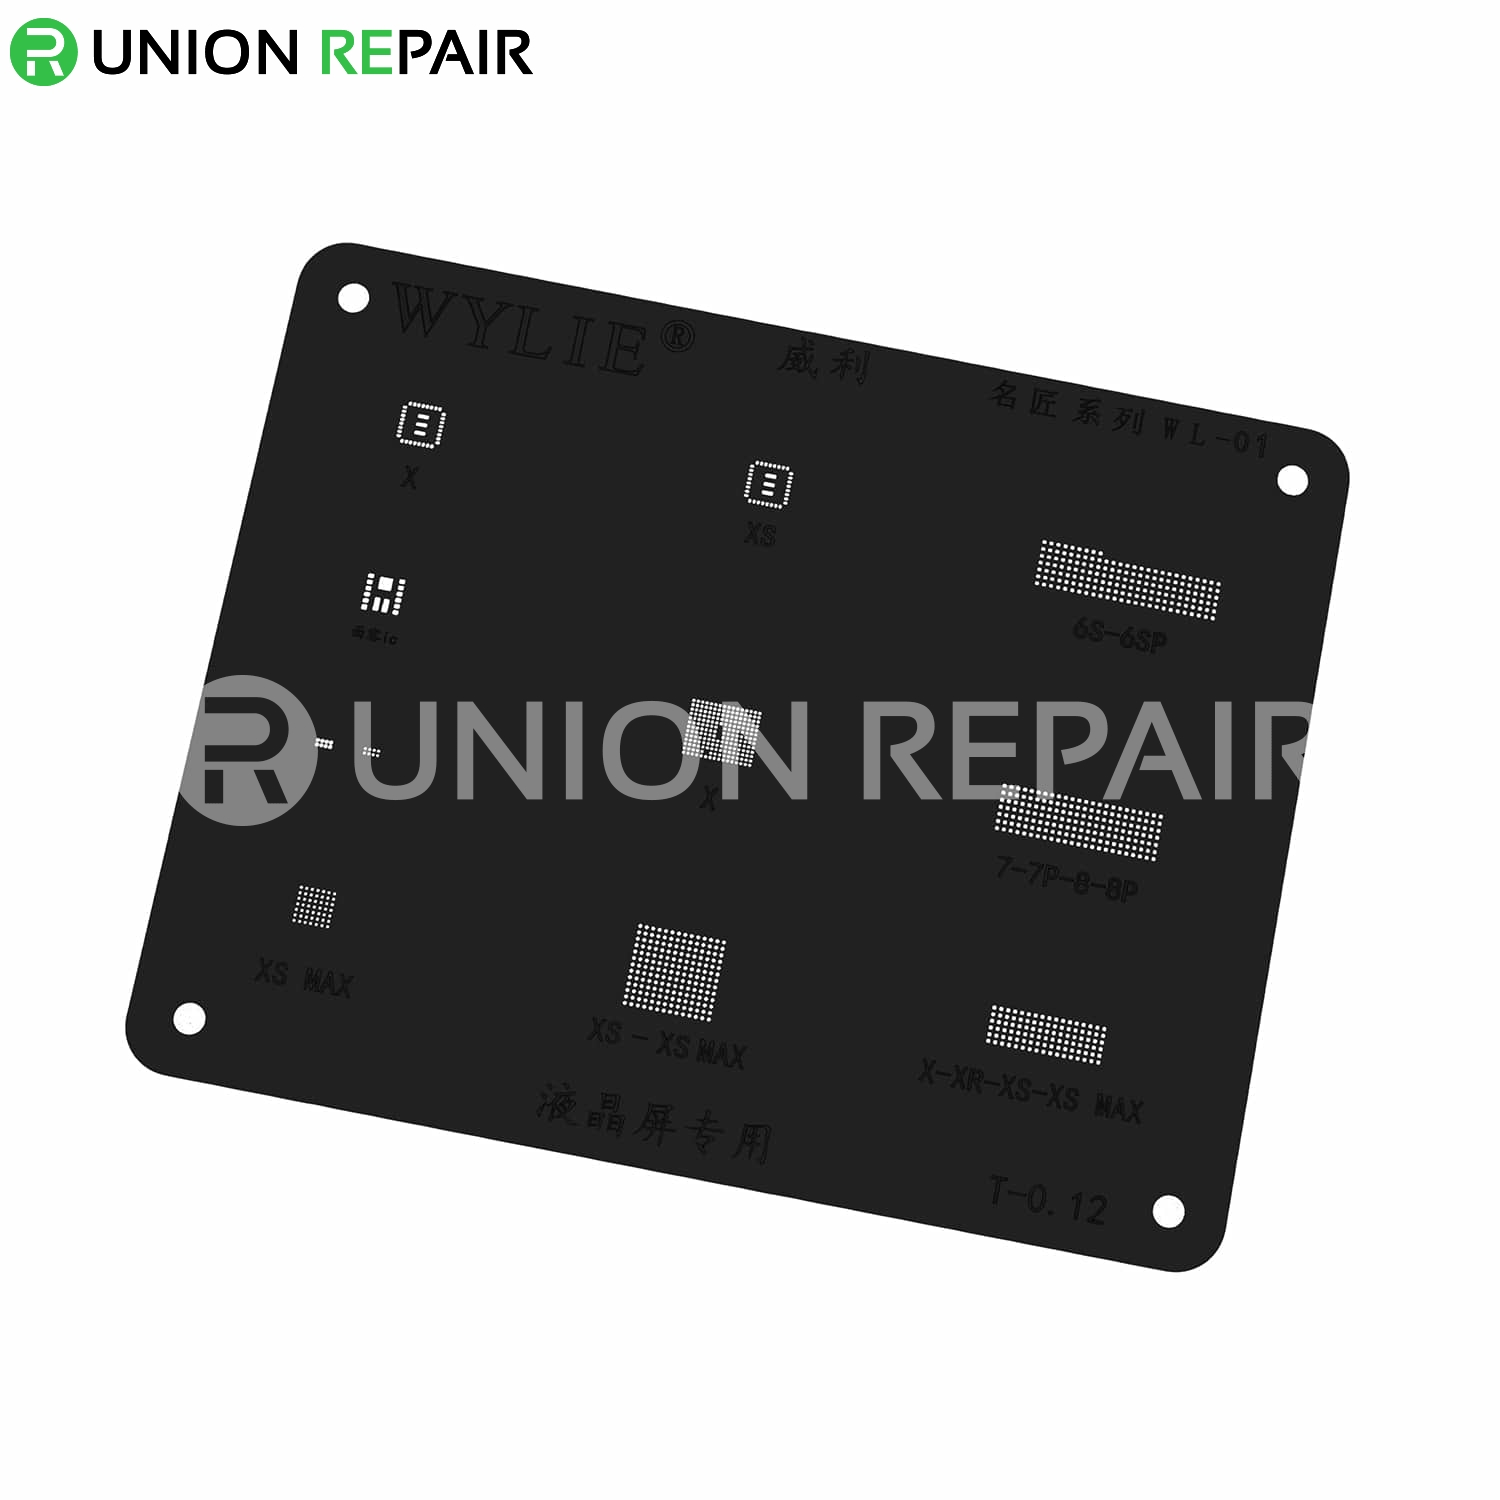 WYLIE Black BGA Reballing Stencil for iPhone LCD Screen On Display Flex Cable